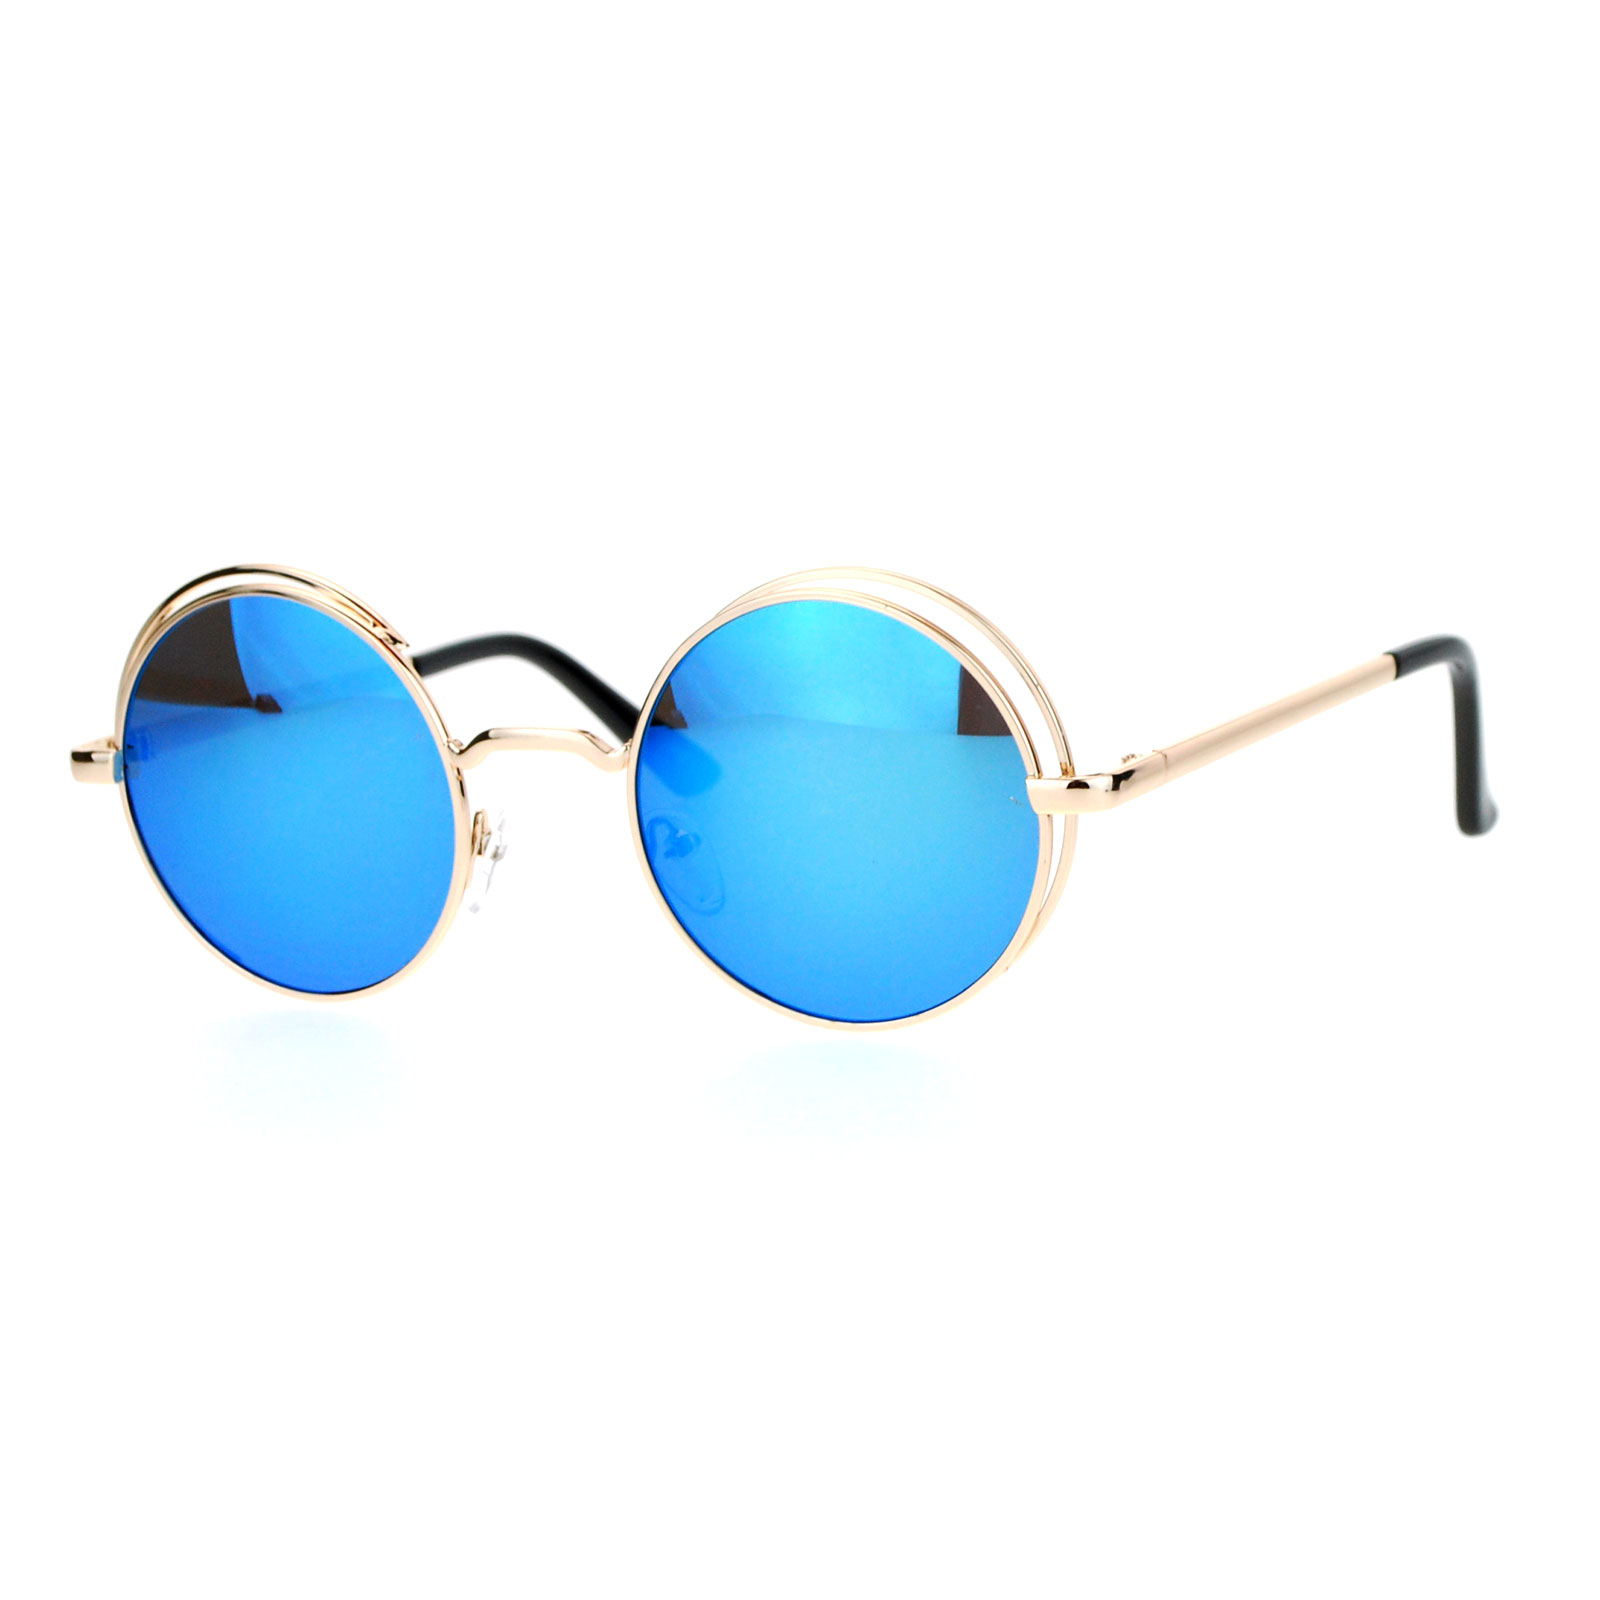 6d7e3d0b5d5 SA106 Color Mirror Round Circle Len Double Rim Sunglasses